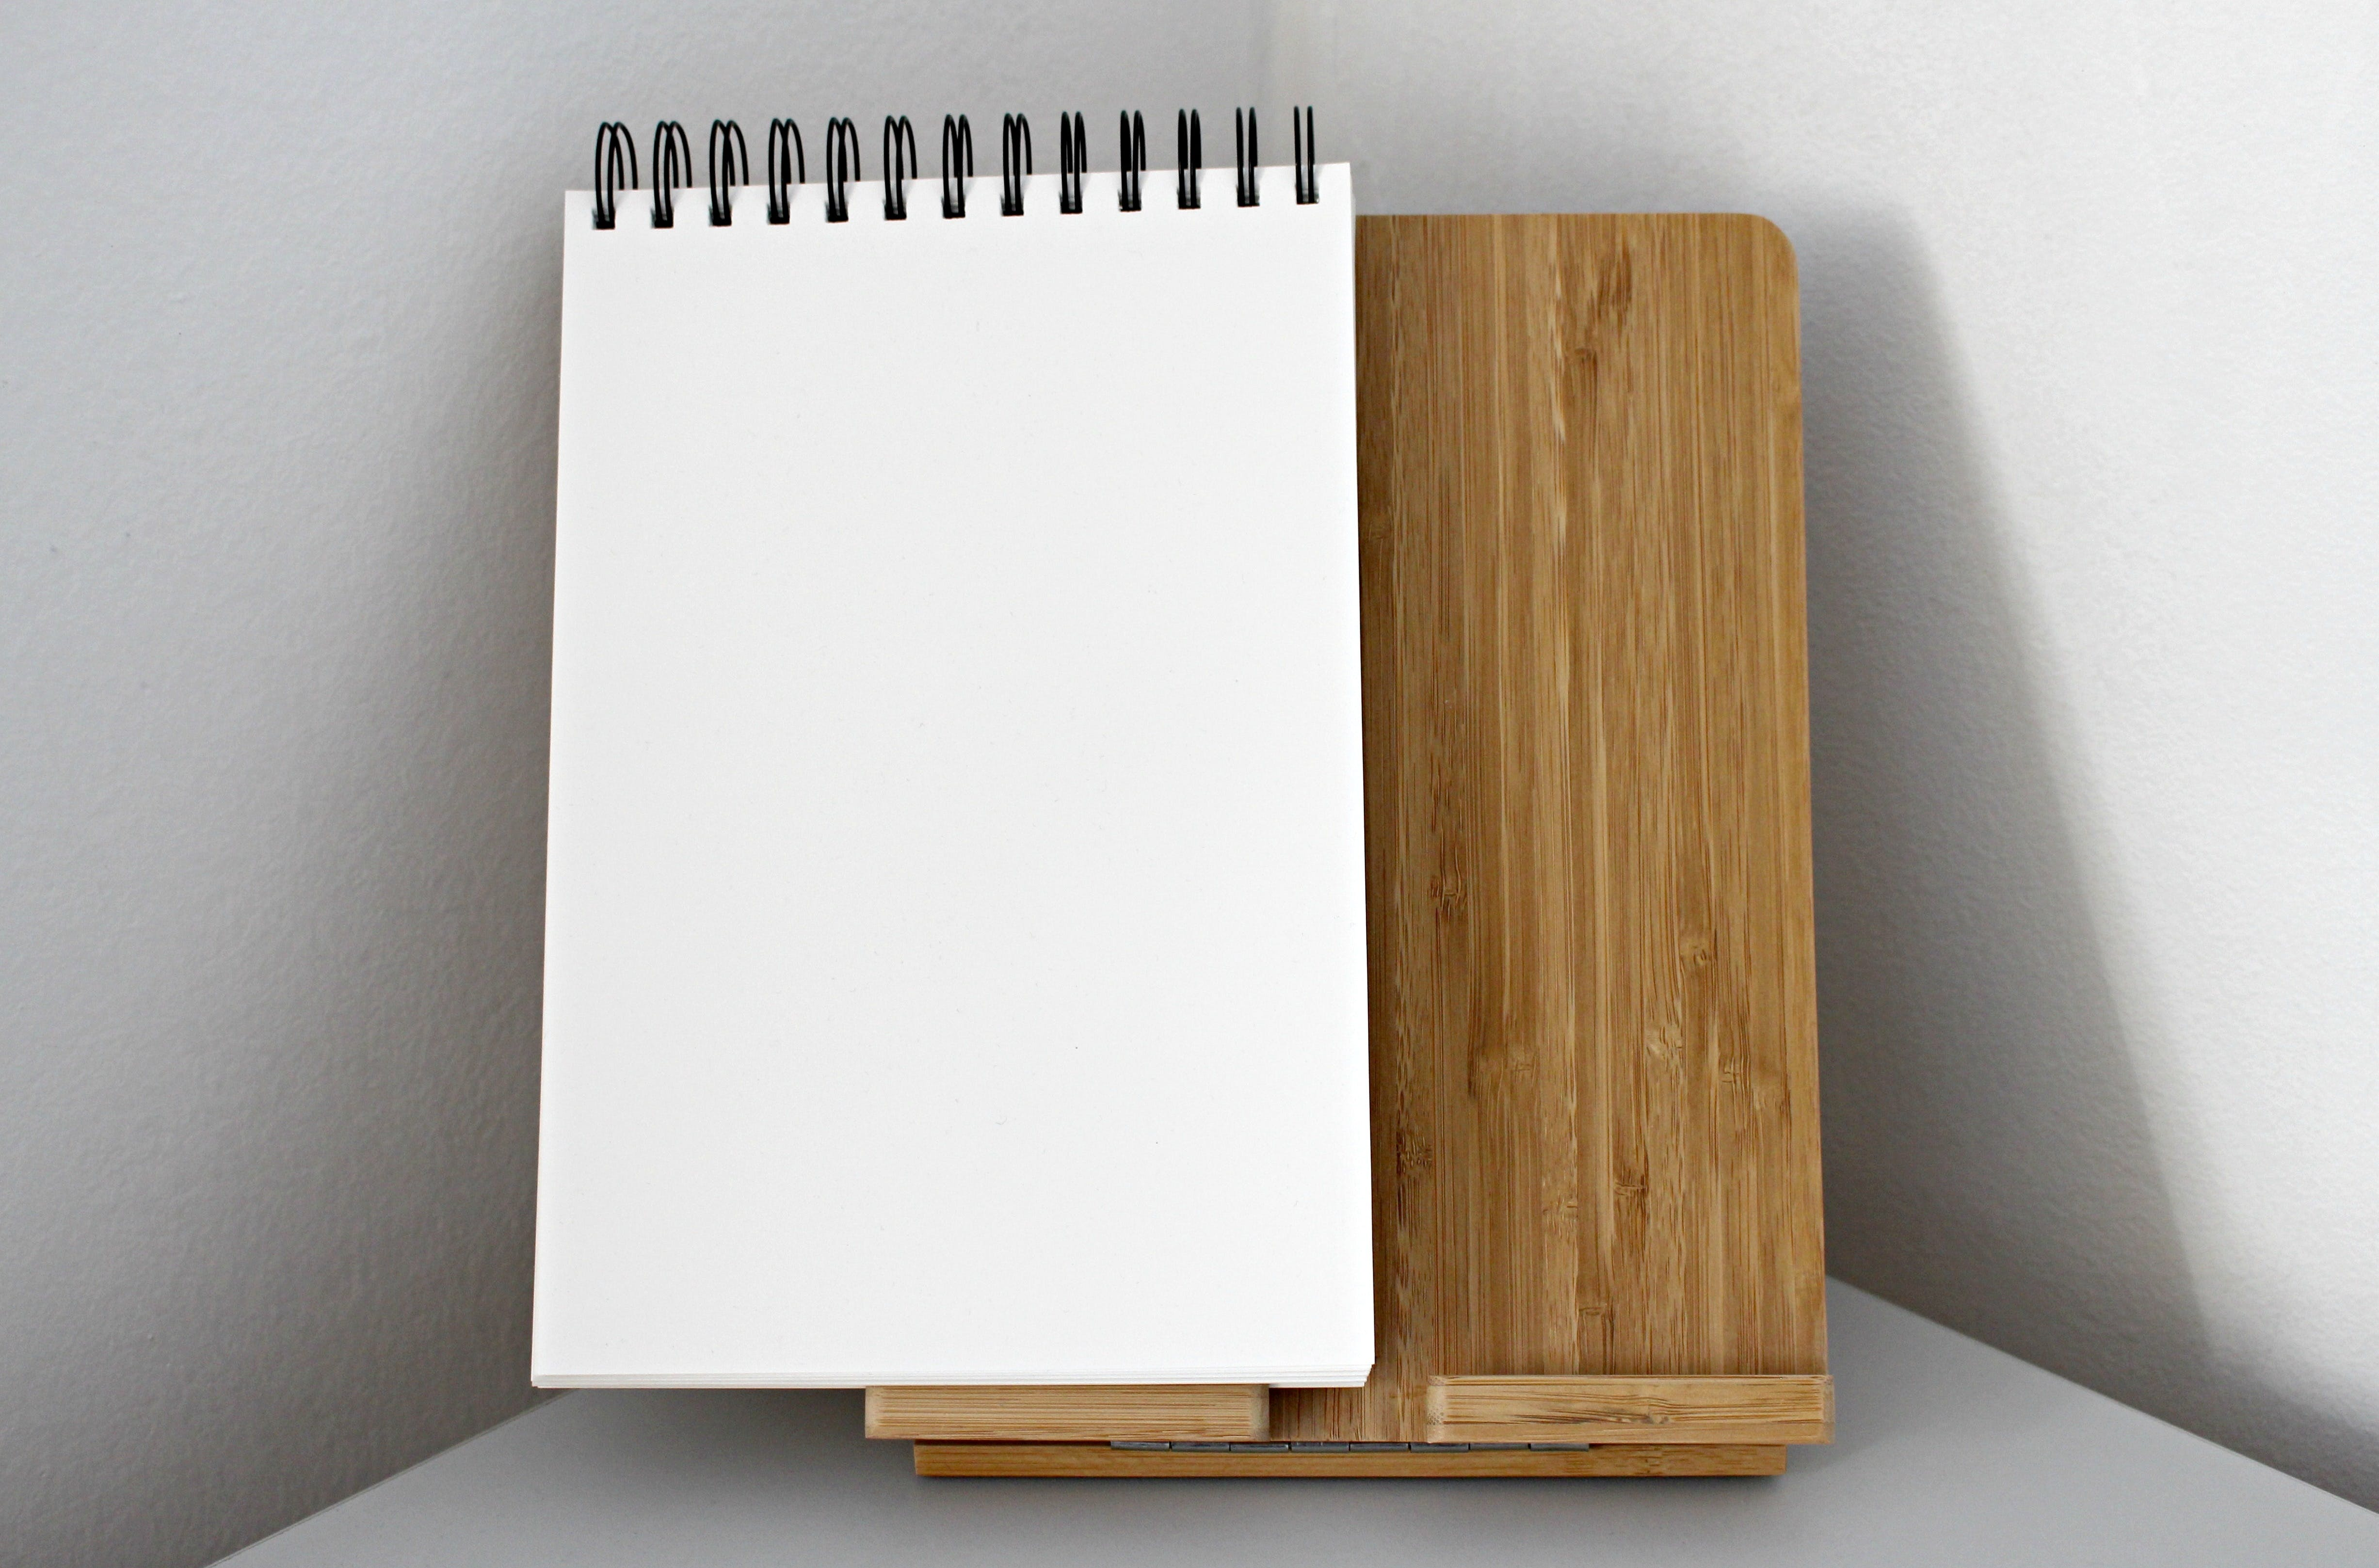 White String Notebook on Top of Brown Wooden Board